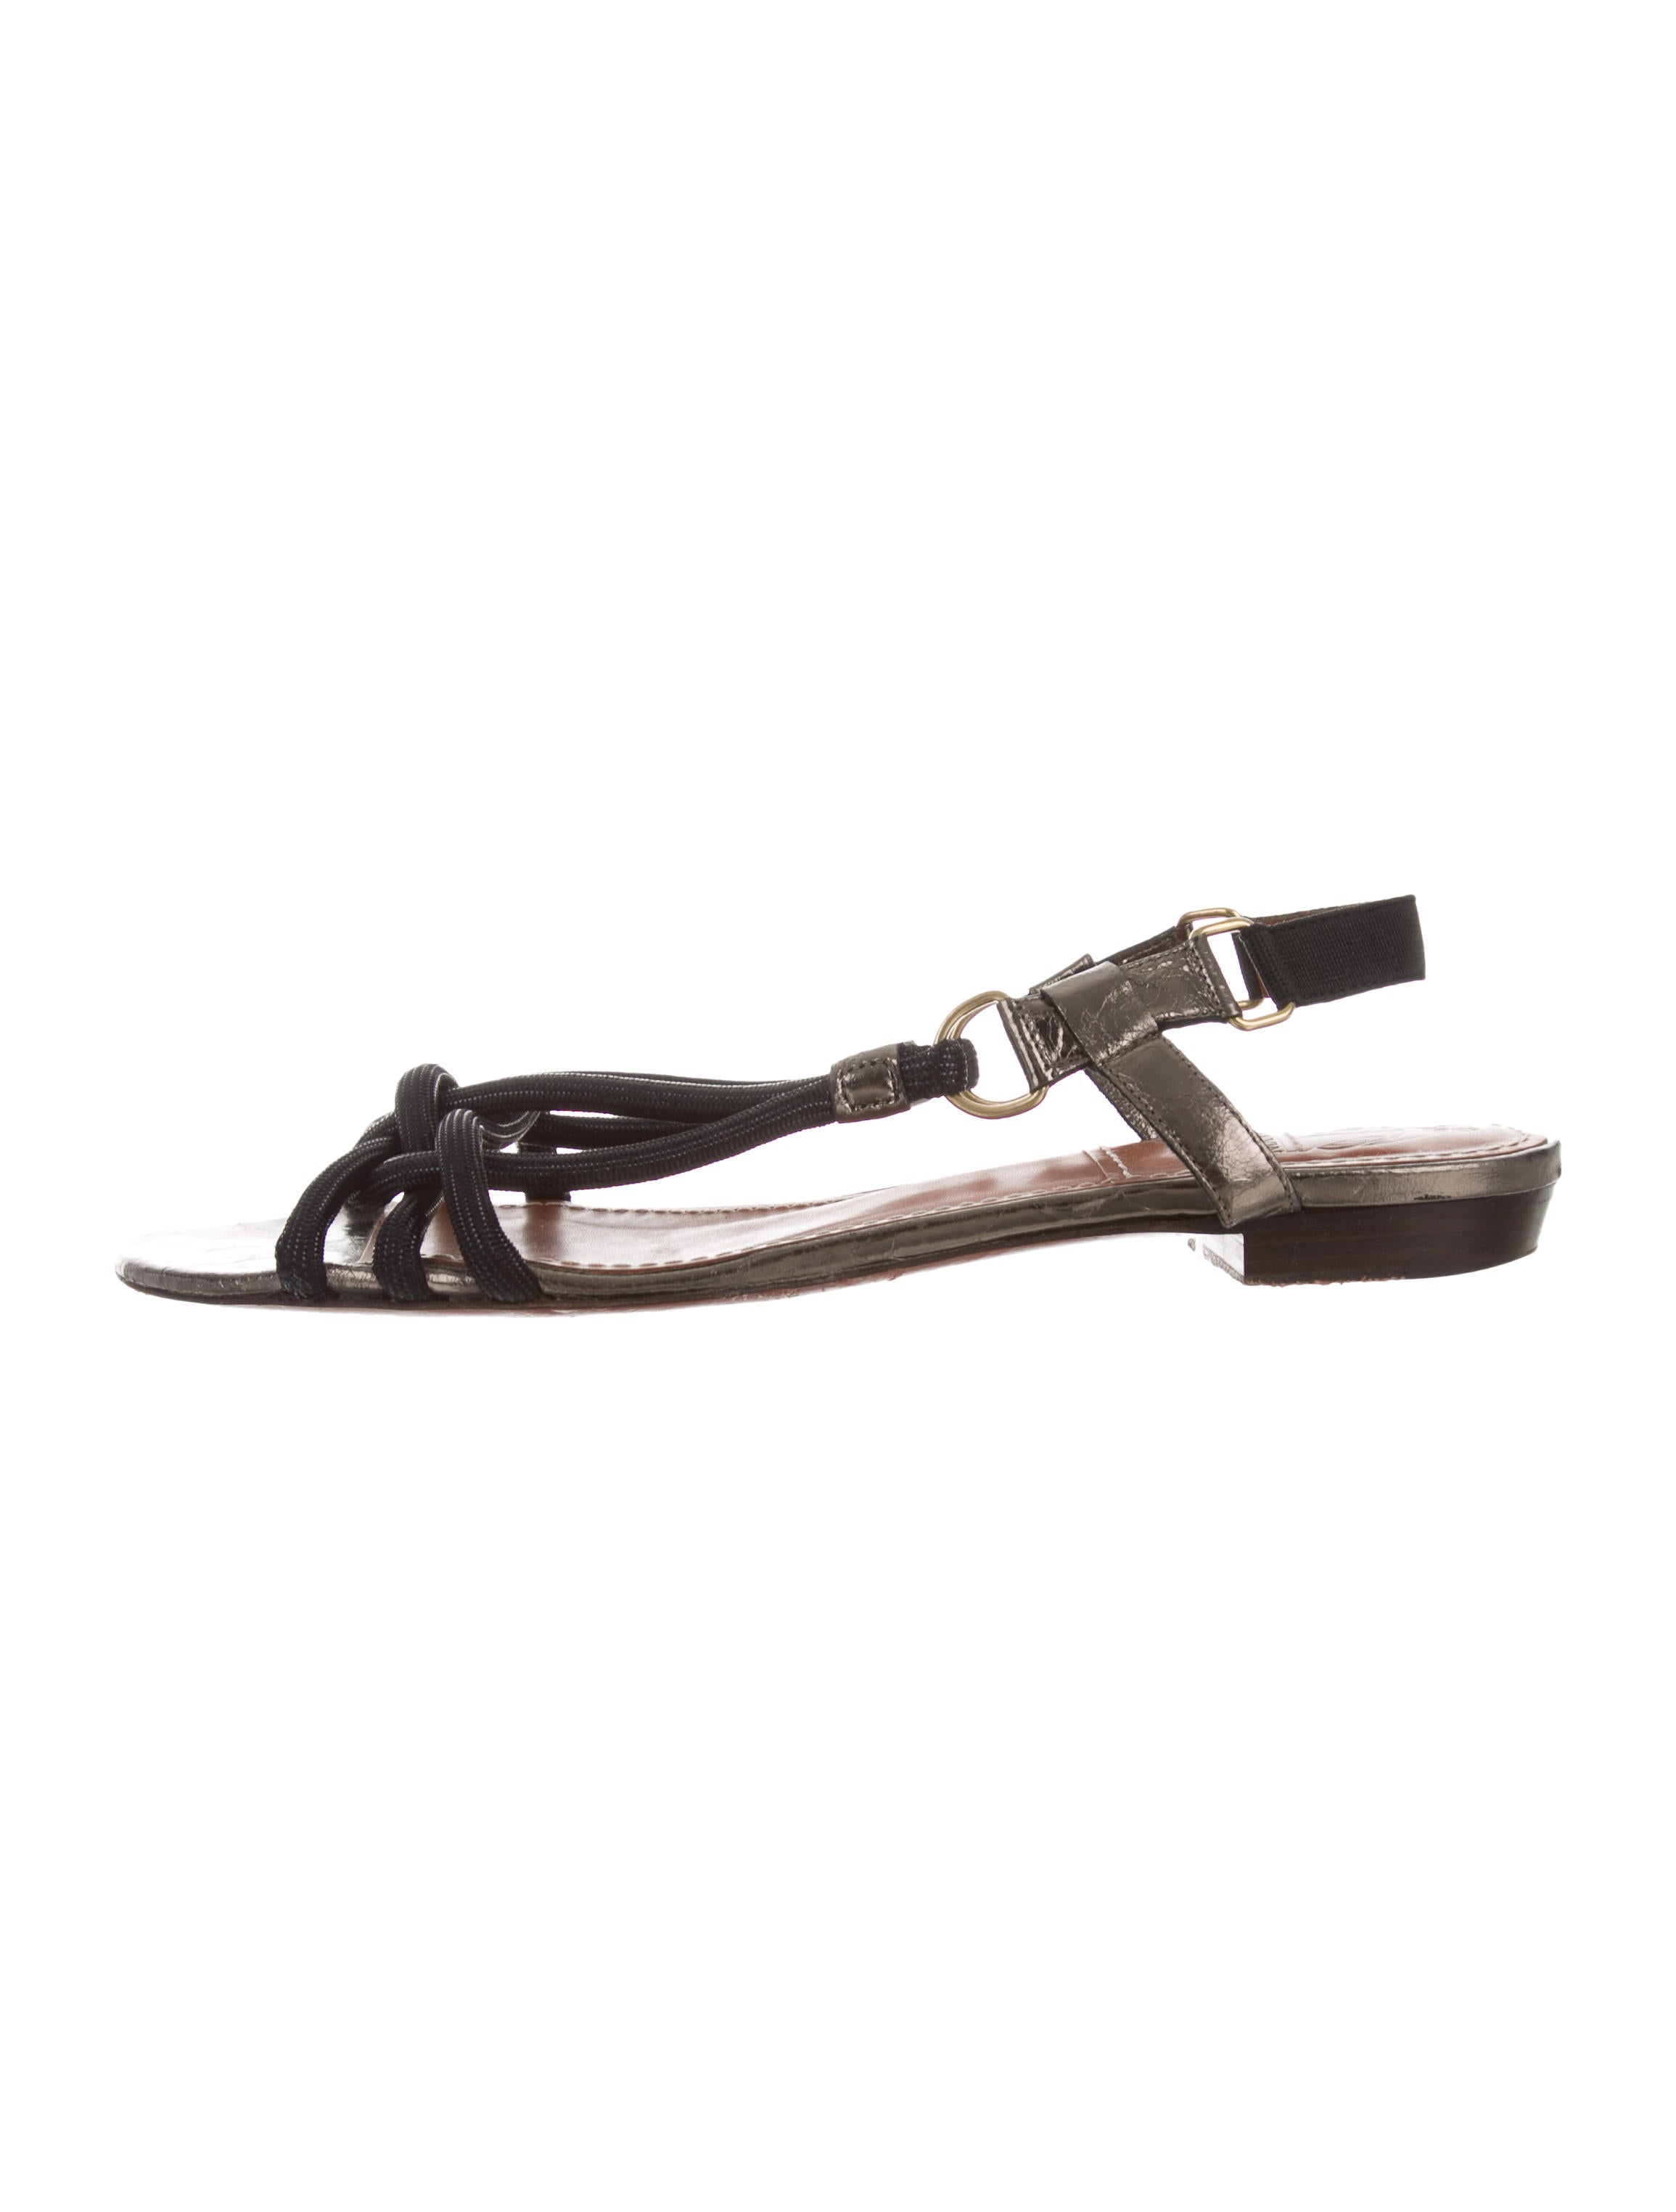 buy cheap shop Lanvin Woven Multistrap Sandals cheap hot sale discount best place lowest price cheap price eastbay for sale UETlGfruew